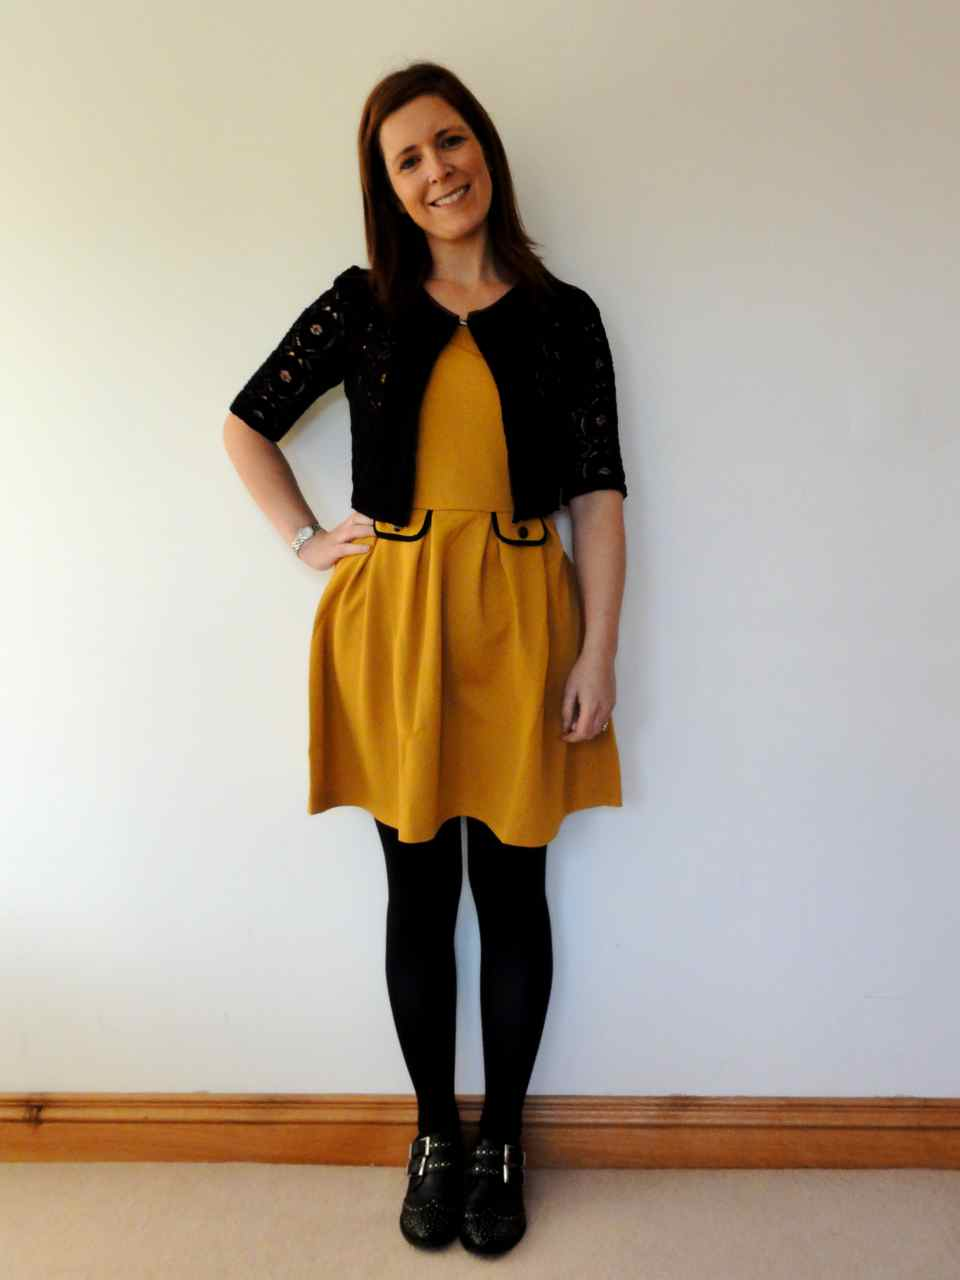 Combination of black and yellow dress